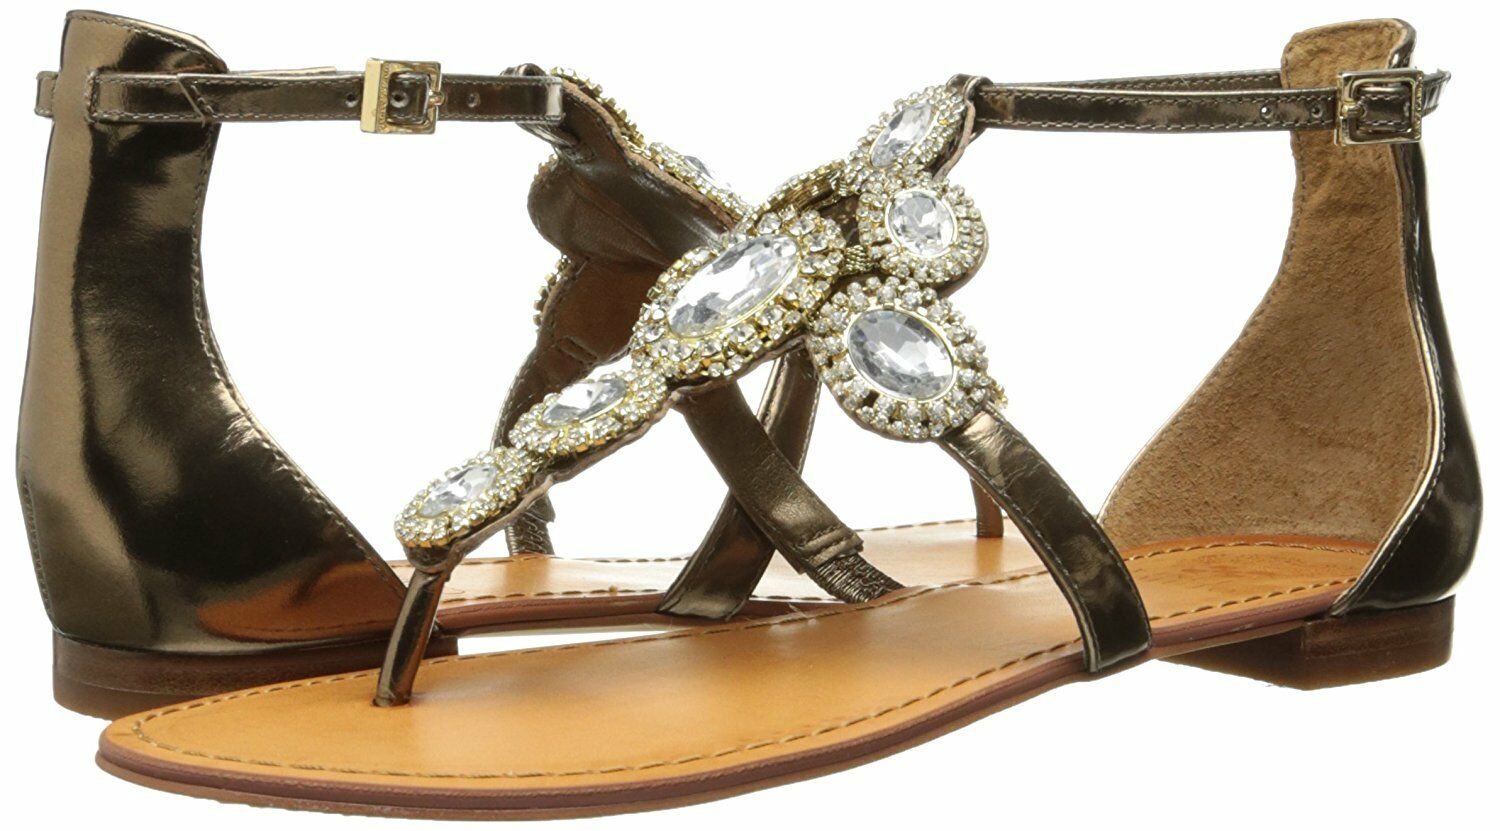 Donna Vince Camuto Manelle Jeweled Sandals, Bronze Mirror Metallic Lea Mul Sizes